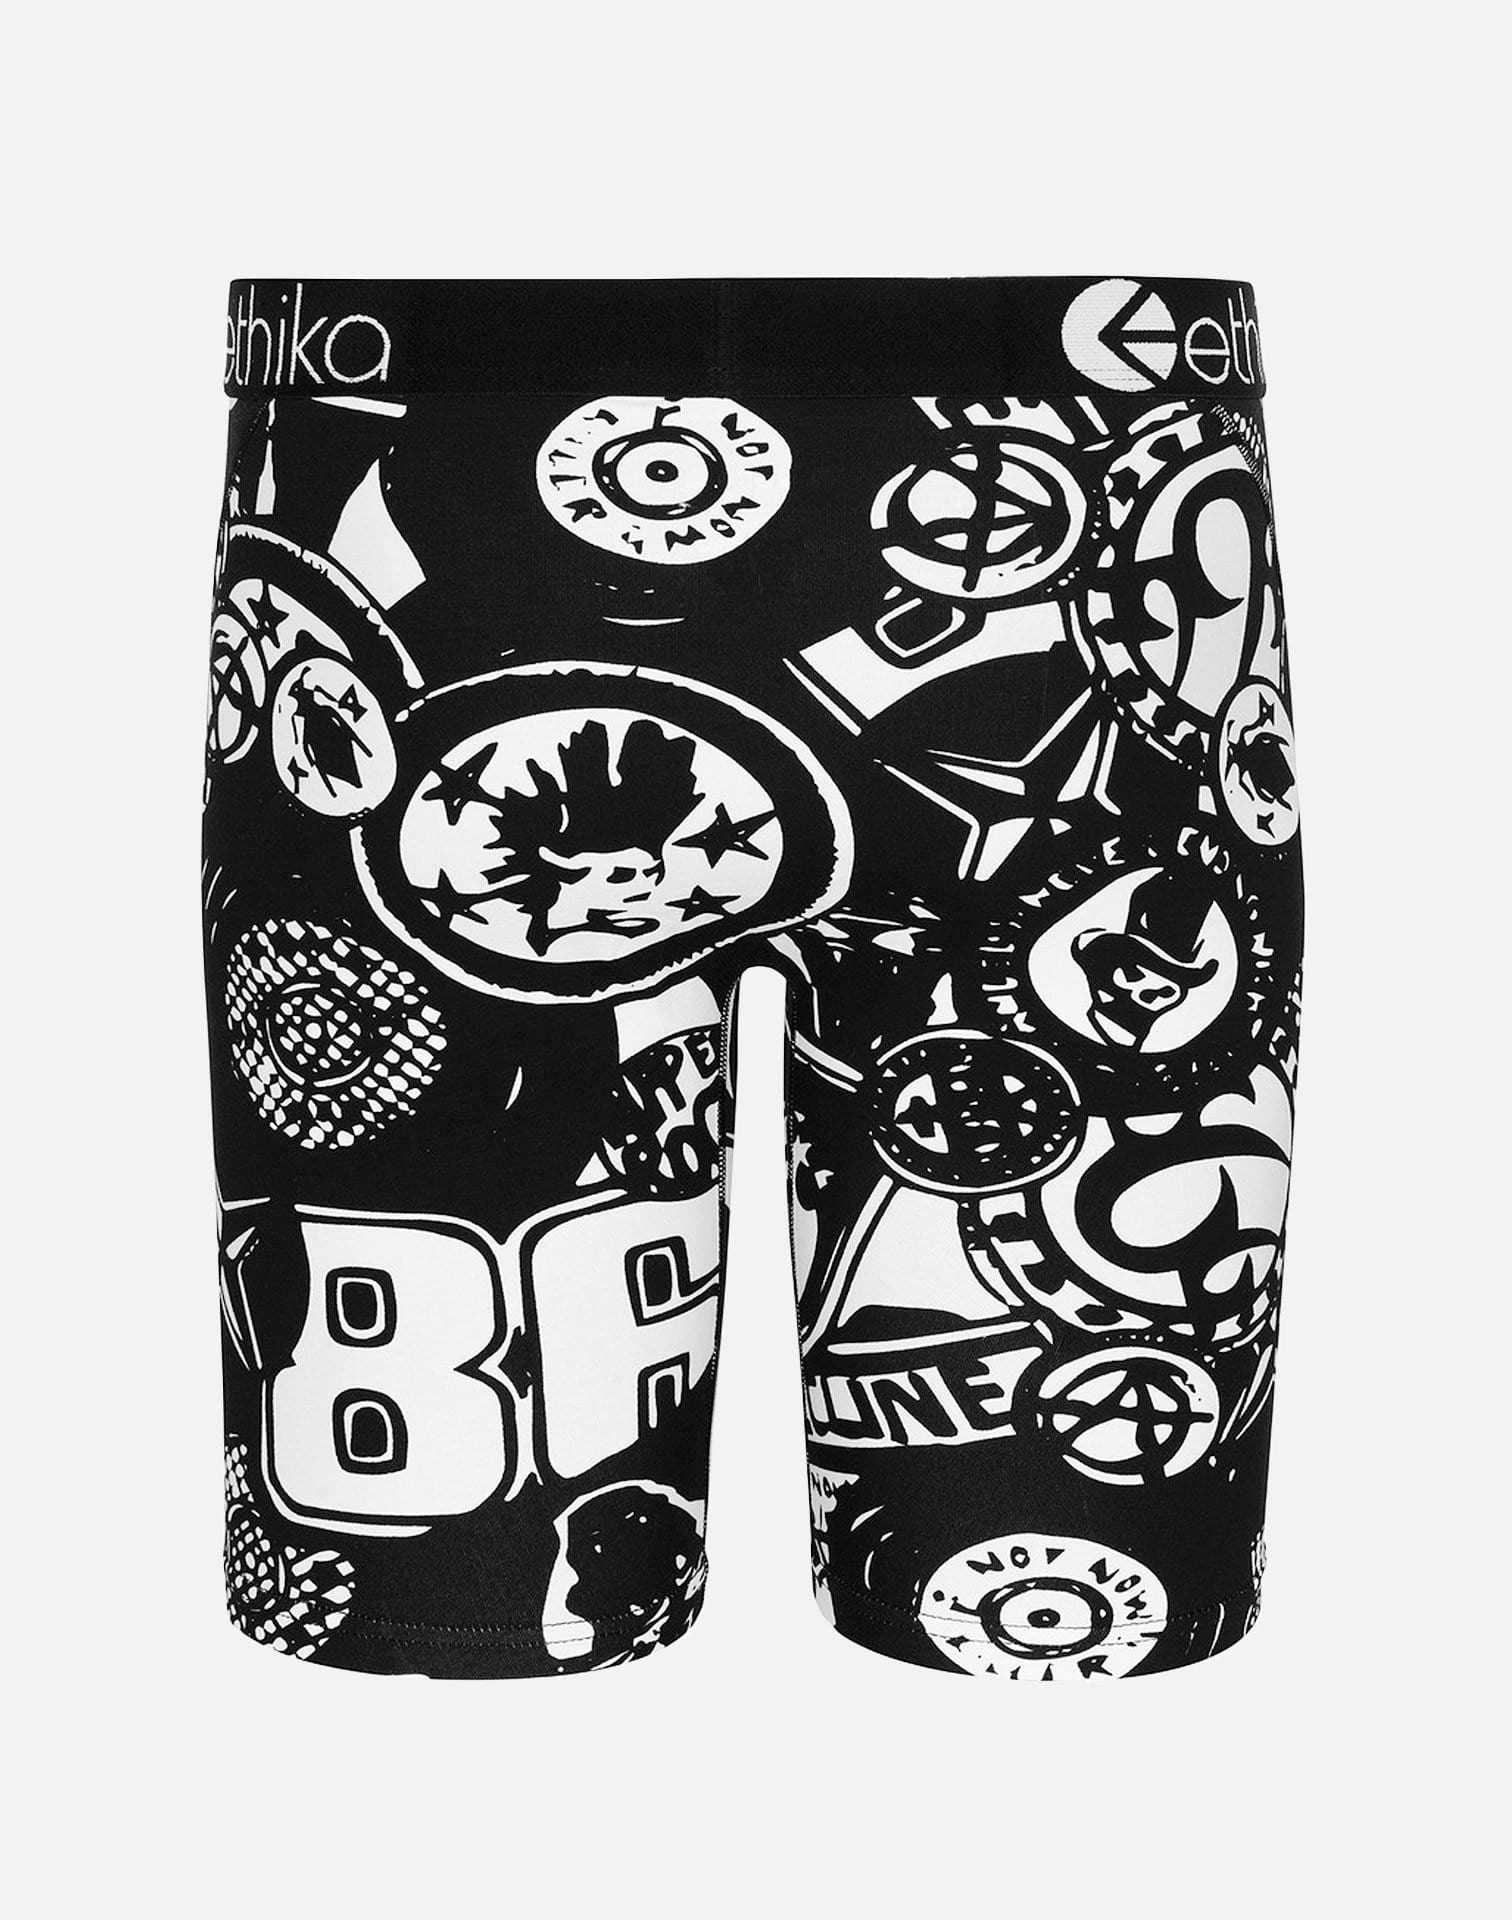 Ethika Soul Rebellion Staple Boxer Briefs (Black/White)